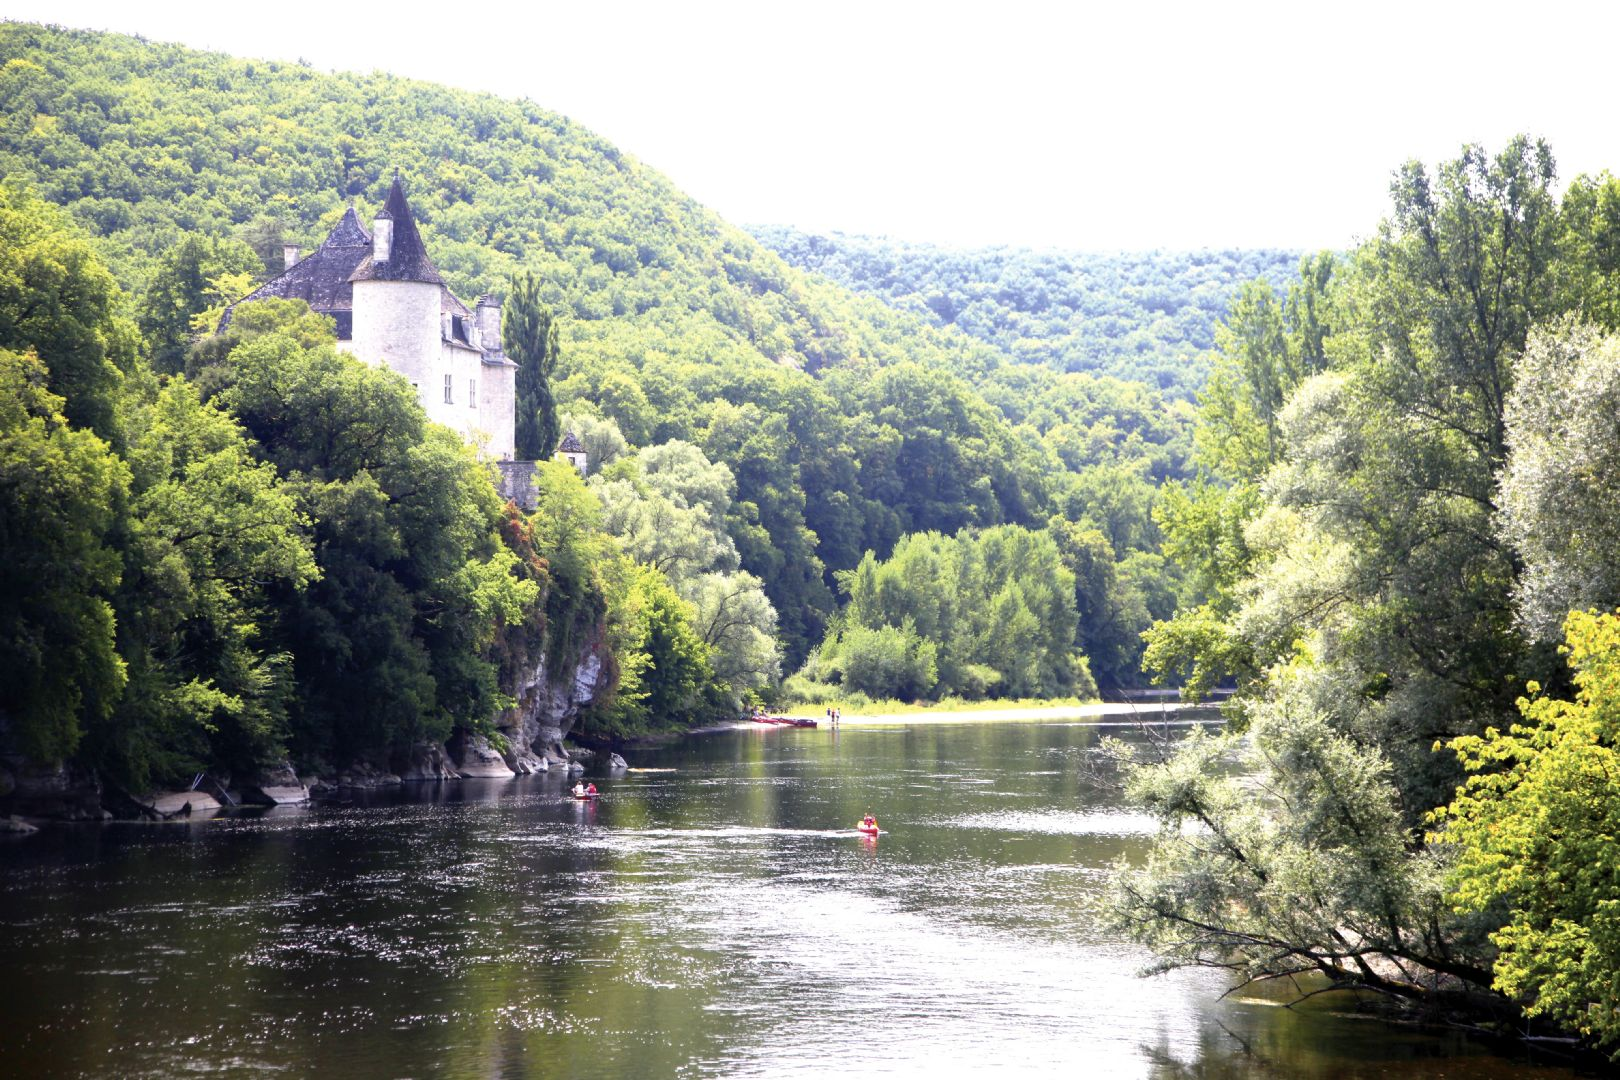 francefamilycycling20.jpg - France - Dordogne Delights - Self-Guided Leisure Cycling Holiday - Leisure Cycling